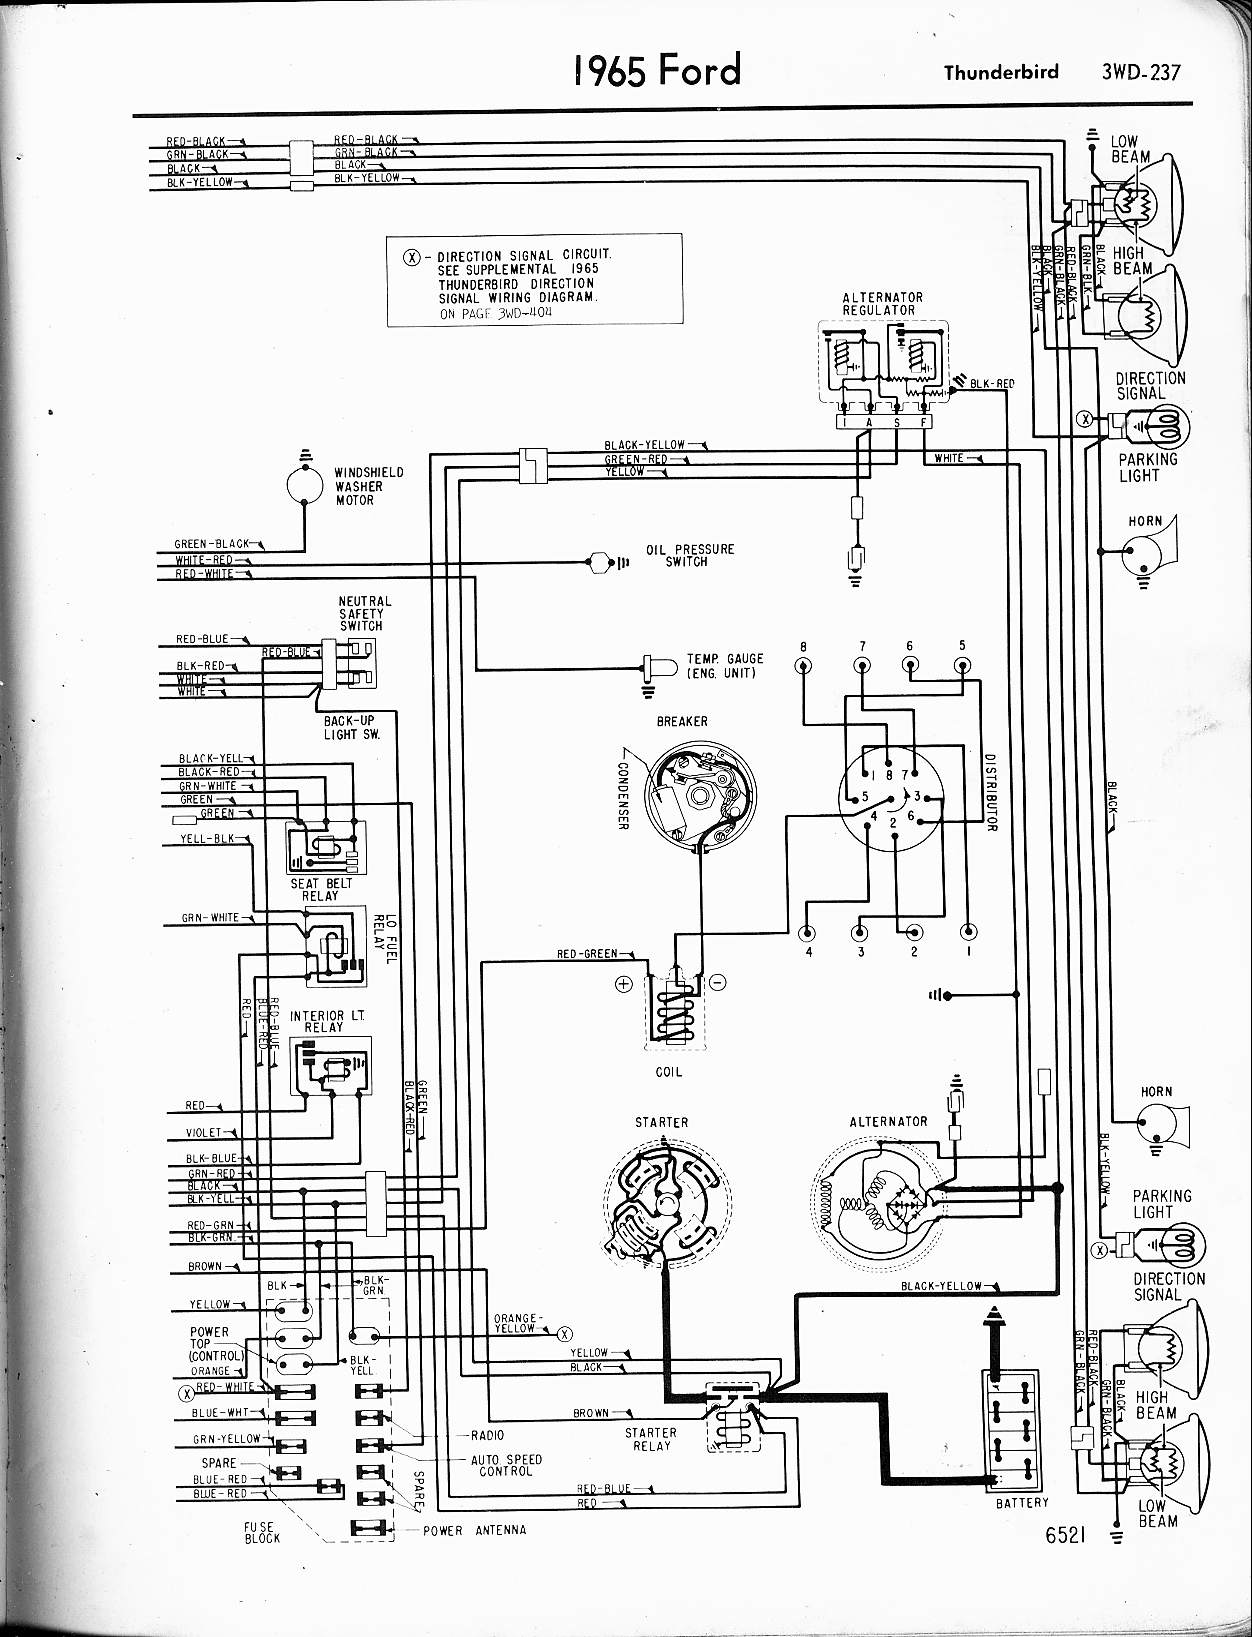 1962 ford radio wiring diagram - wiring diagram export cup-bitter -  cup-bitter.congressosifo2018.it  congressosifo2018.it